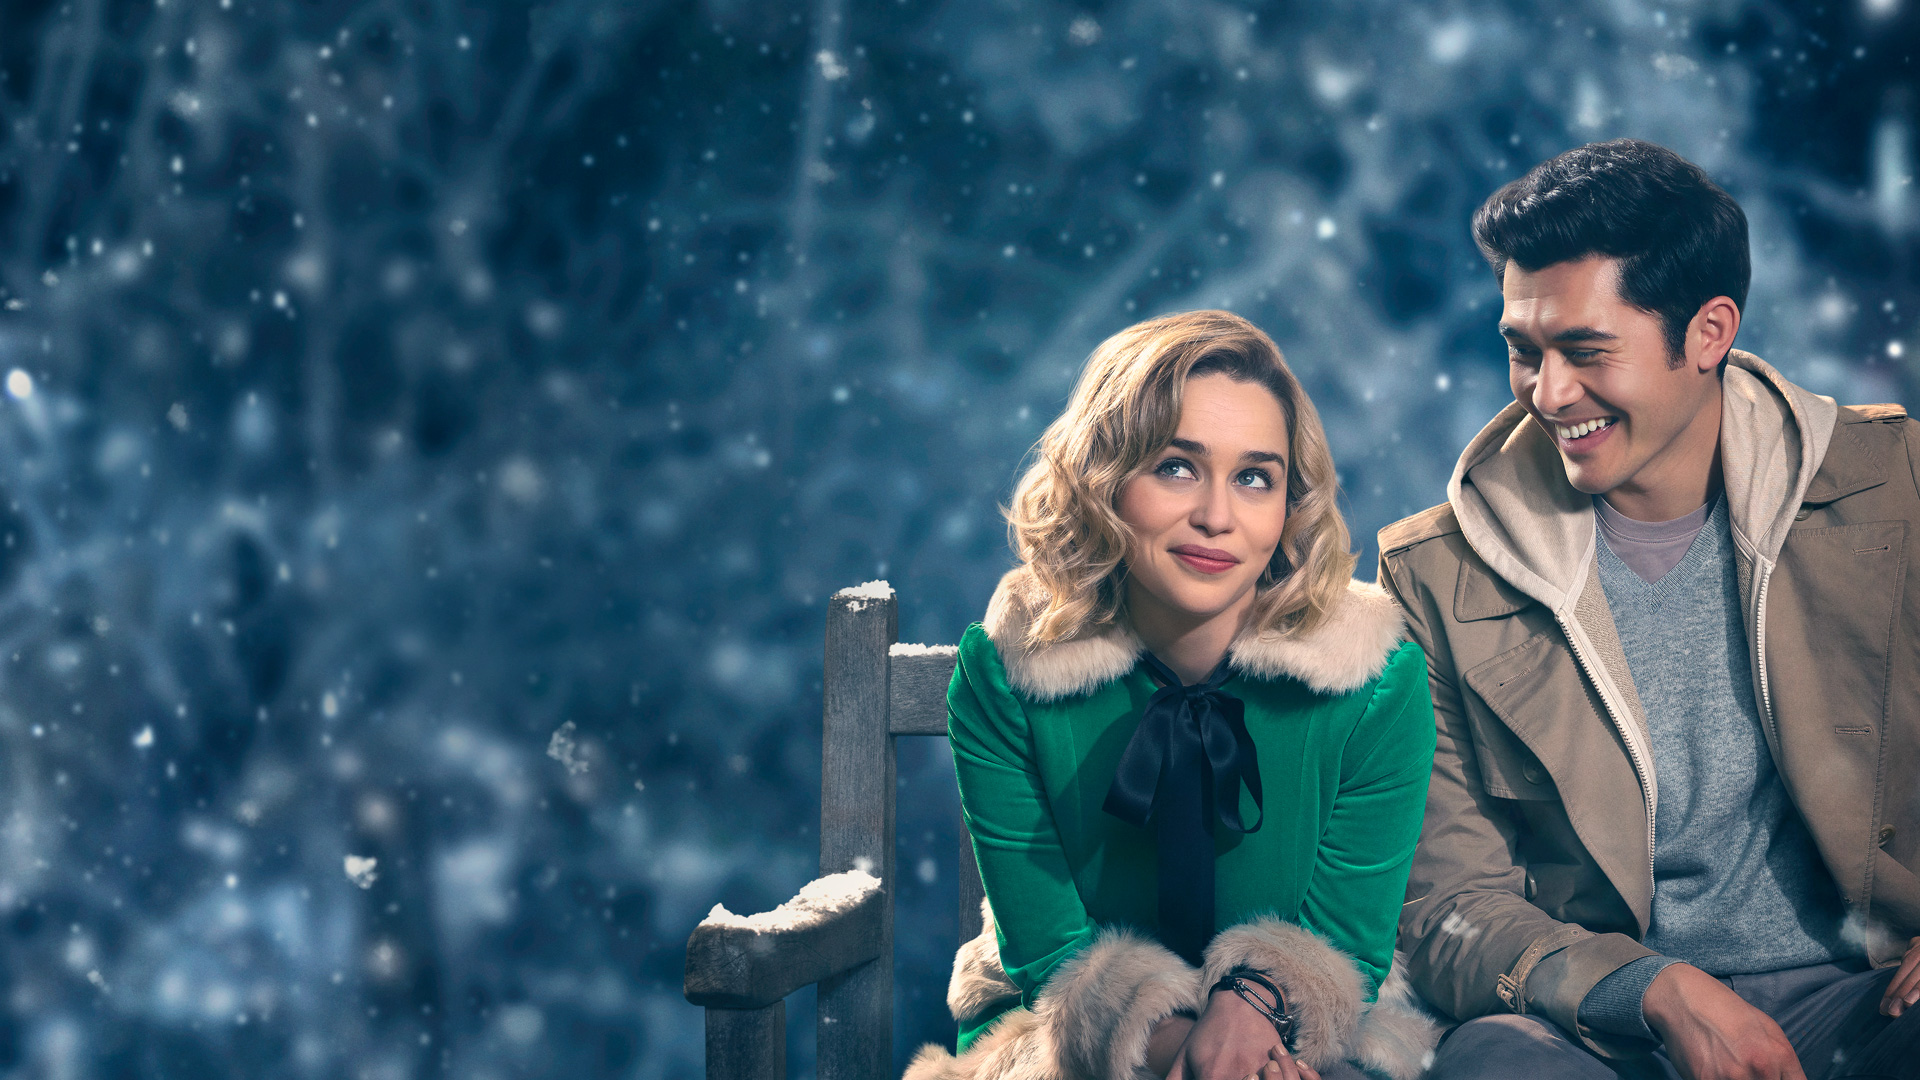 https://www.universalpictures.es/tl_files/content/movies/last_christmas/last-christmas_header.jpg